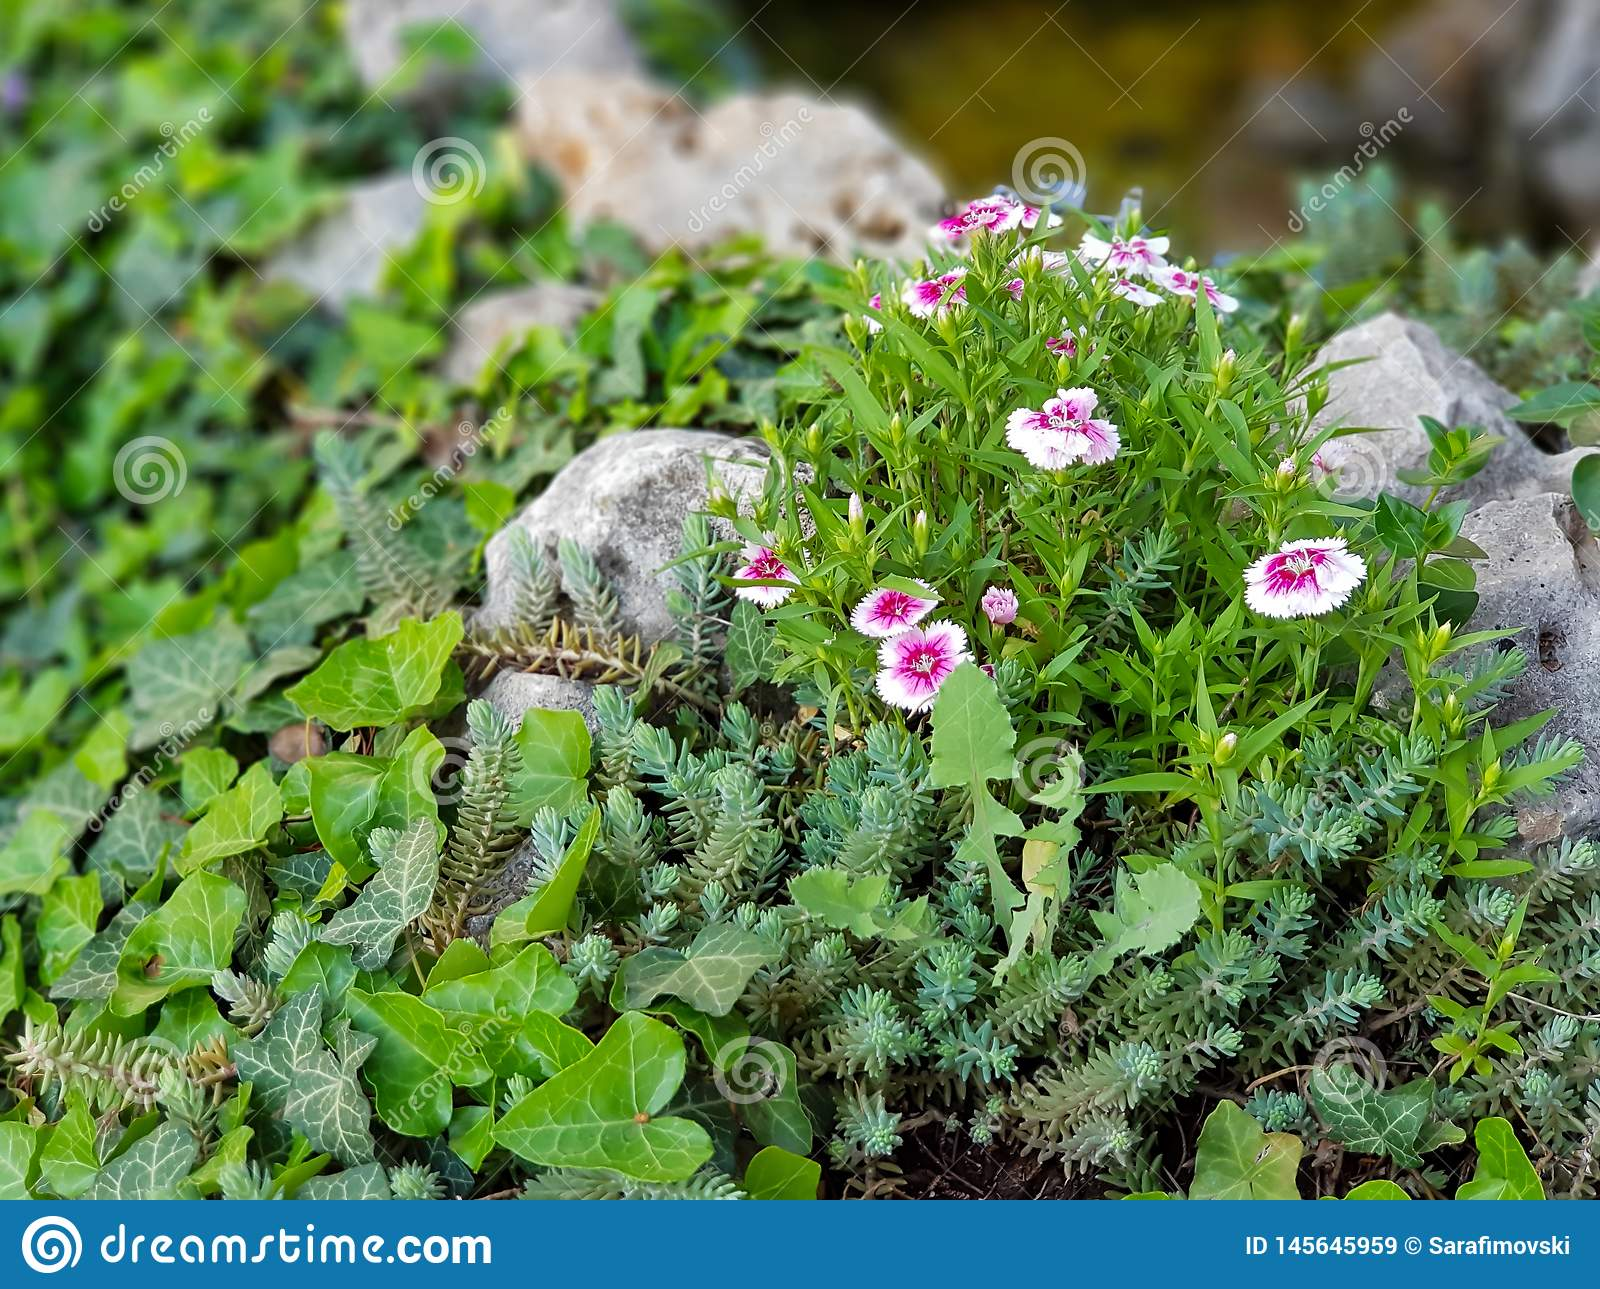 Beautiful pink and white wild flowers in grass and rocks.